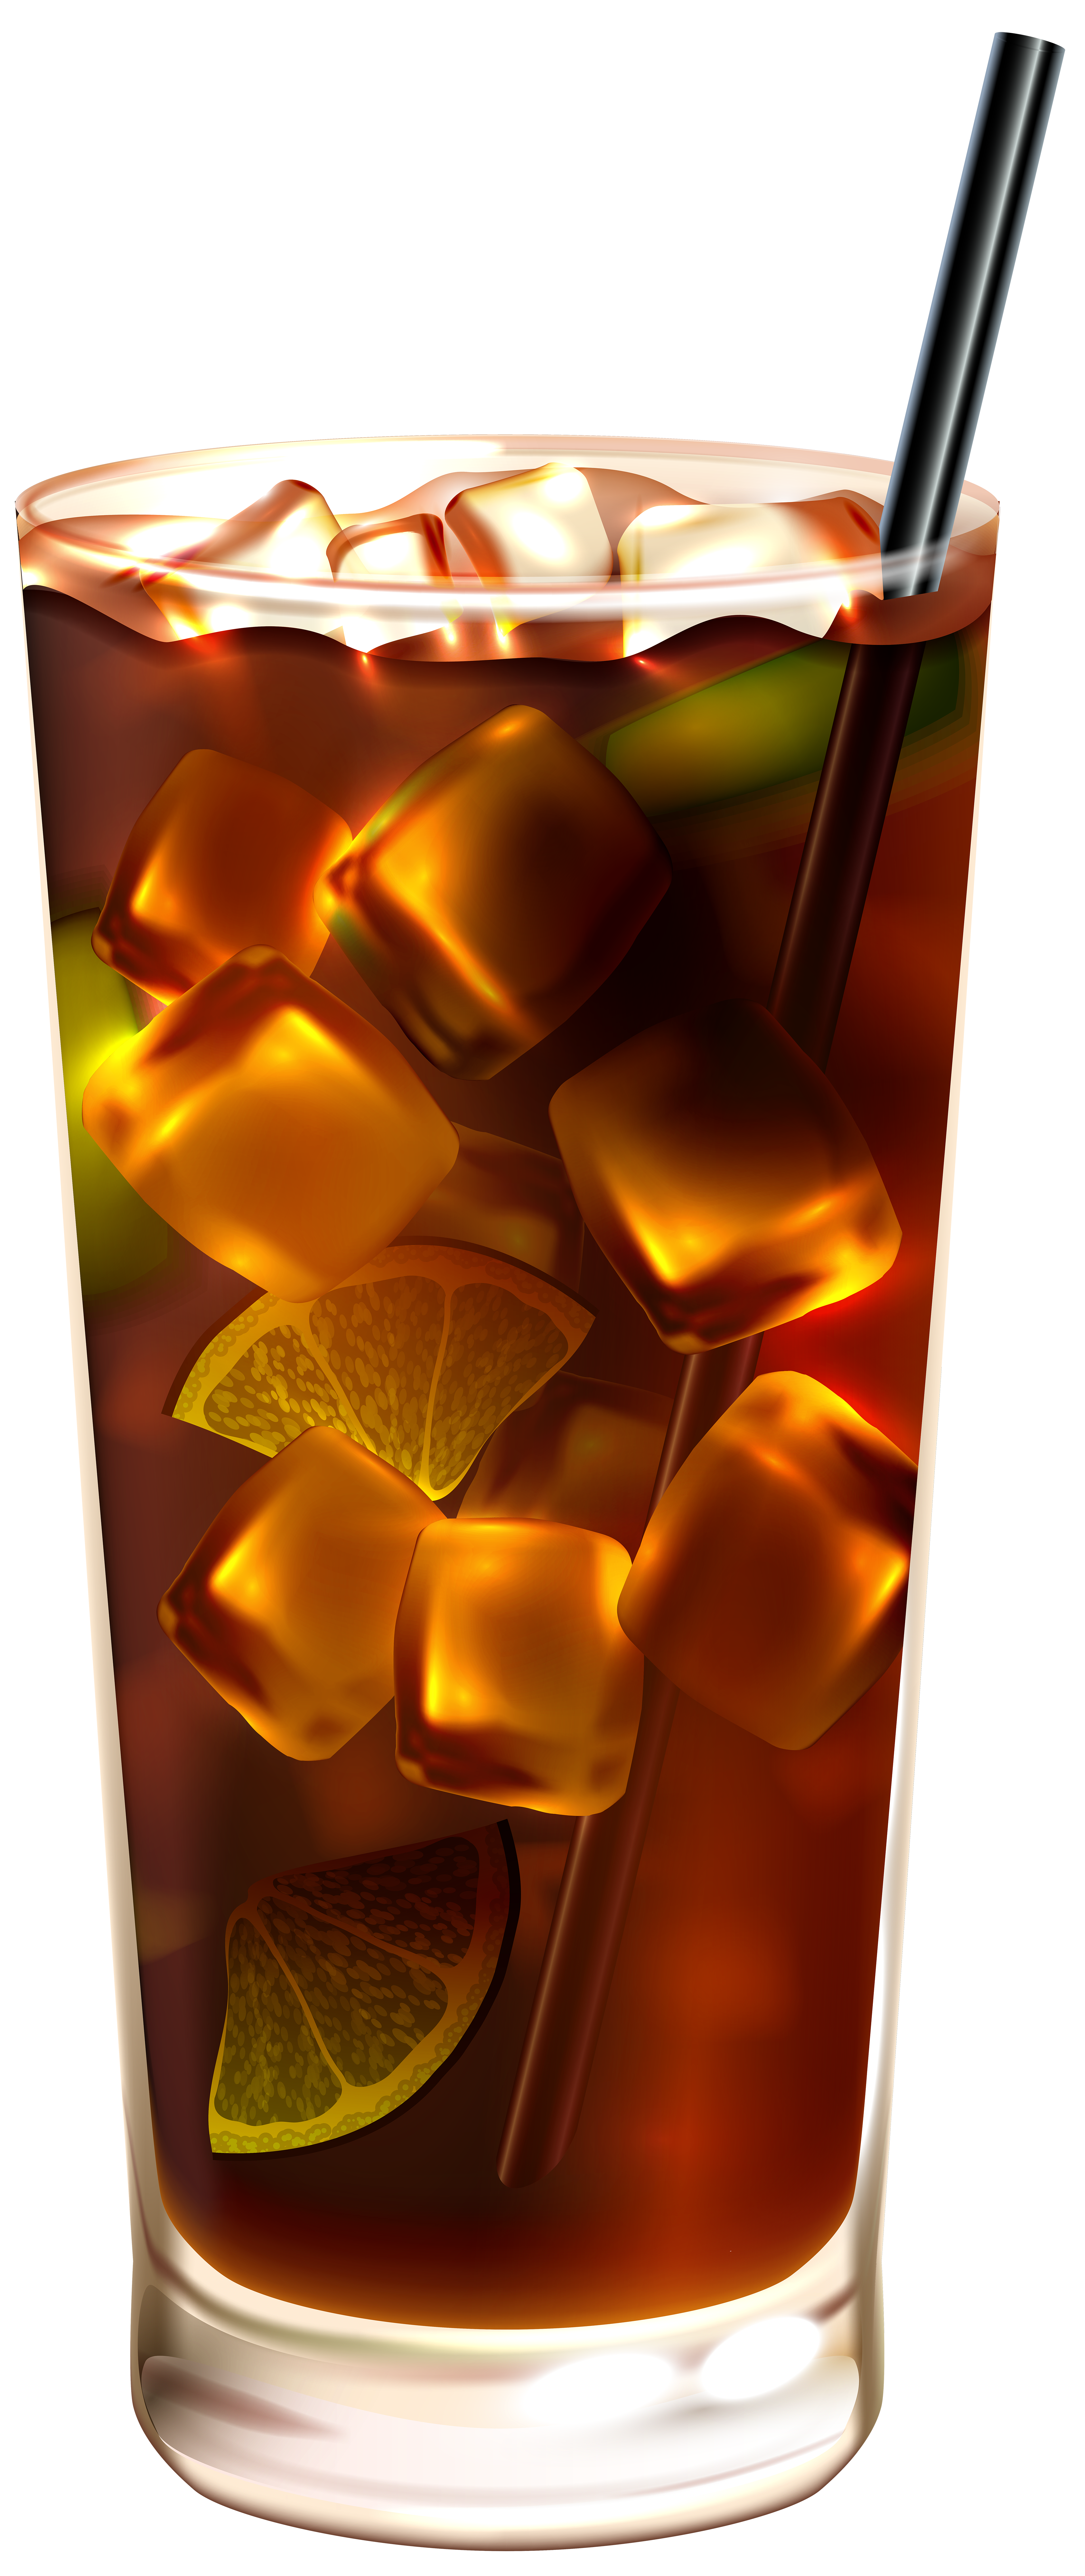 Soda glass png. Cola with ice clip